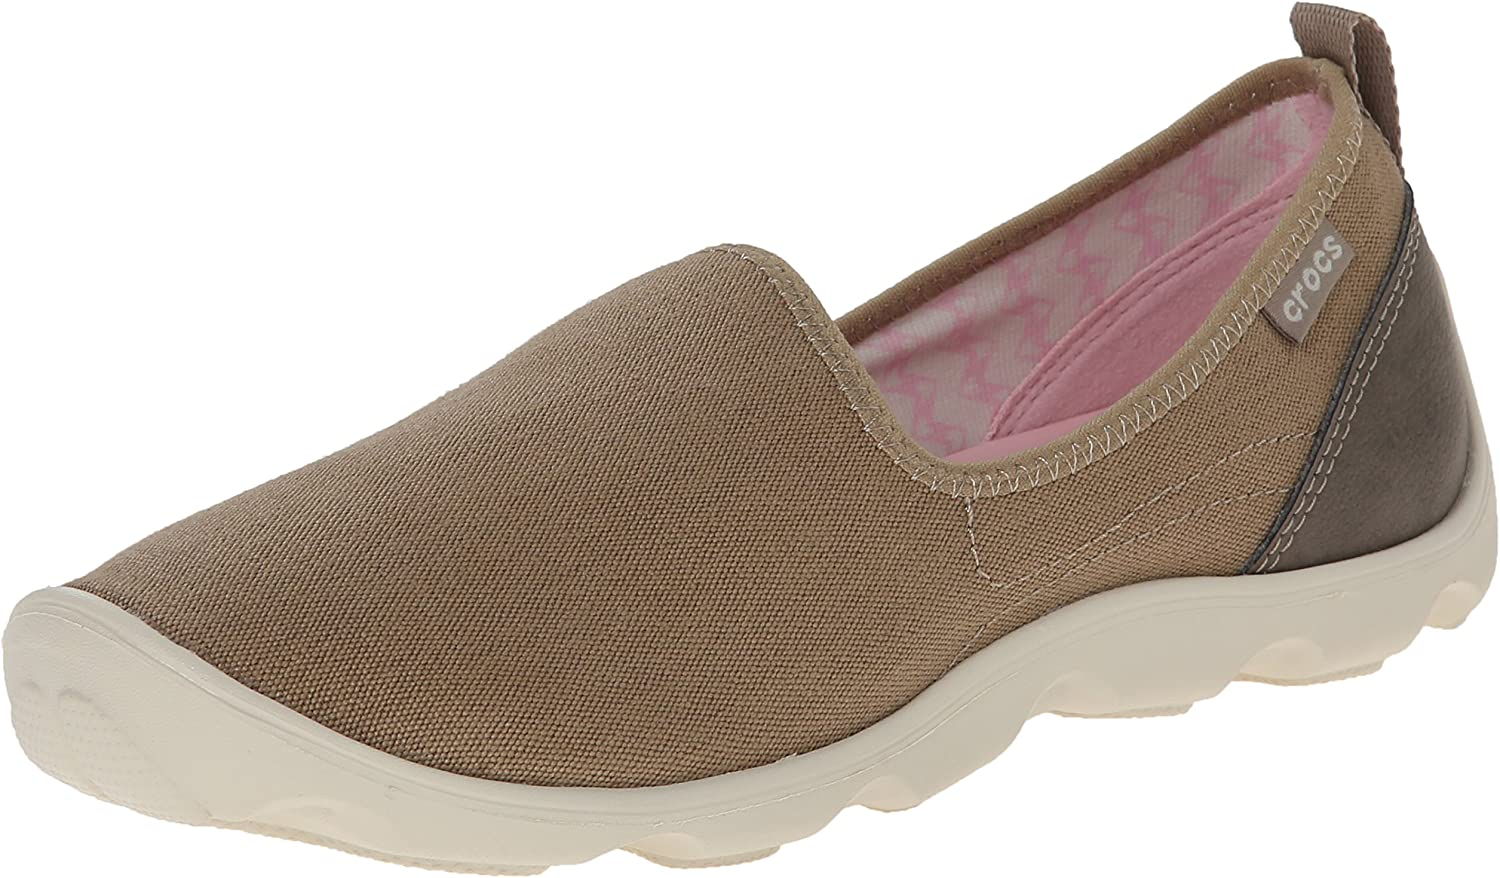 Crocs Women's Busy Day Canvas shoes